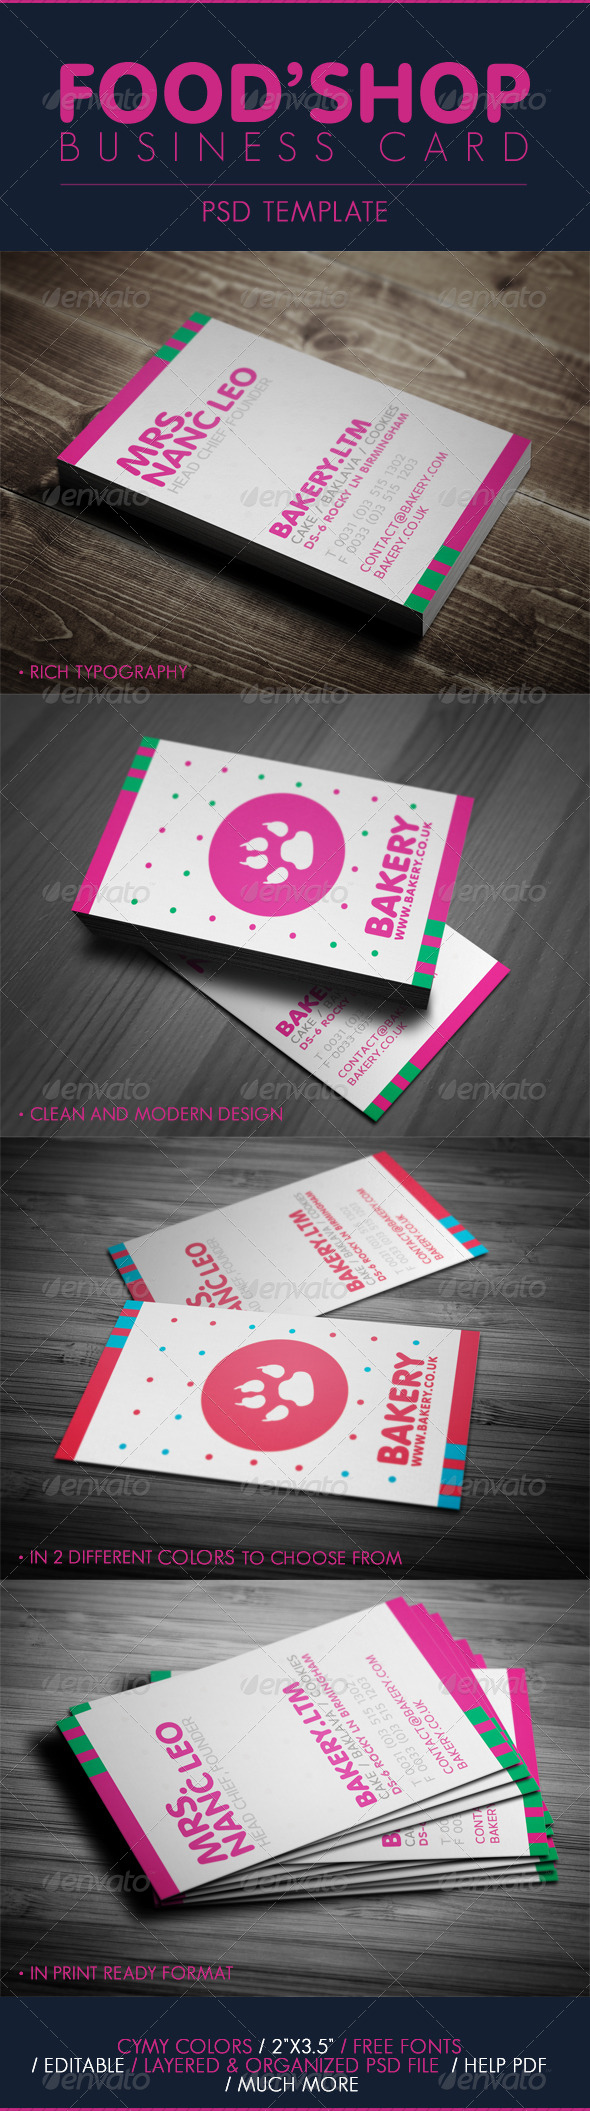 Business Card - For Food Shop - Industry Specific Business Cards